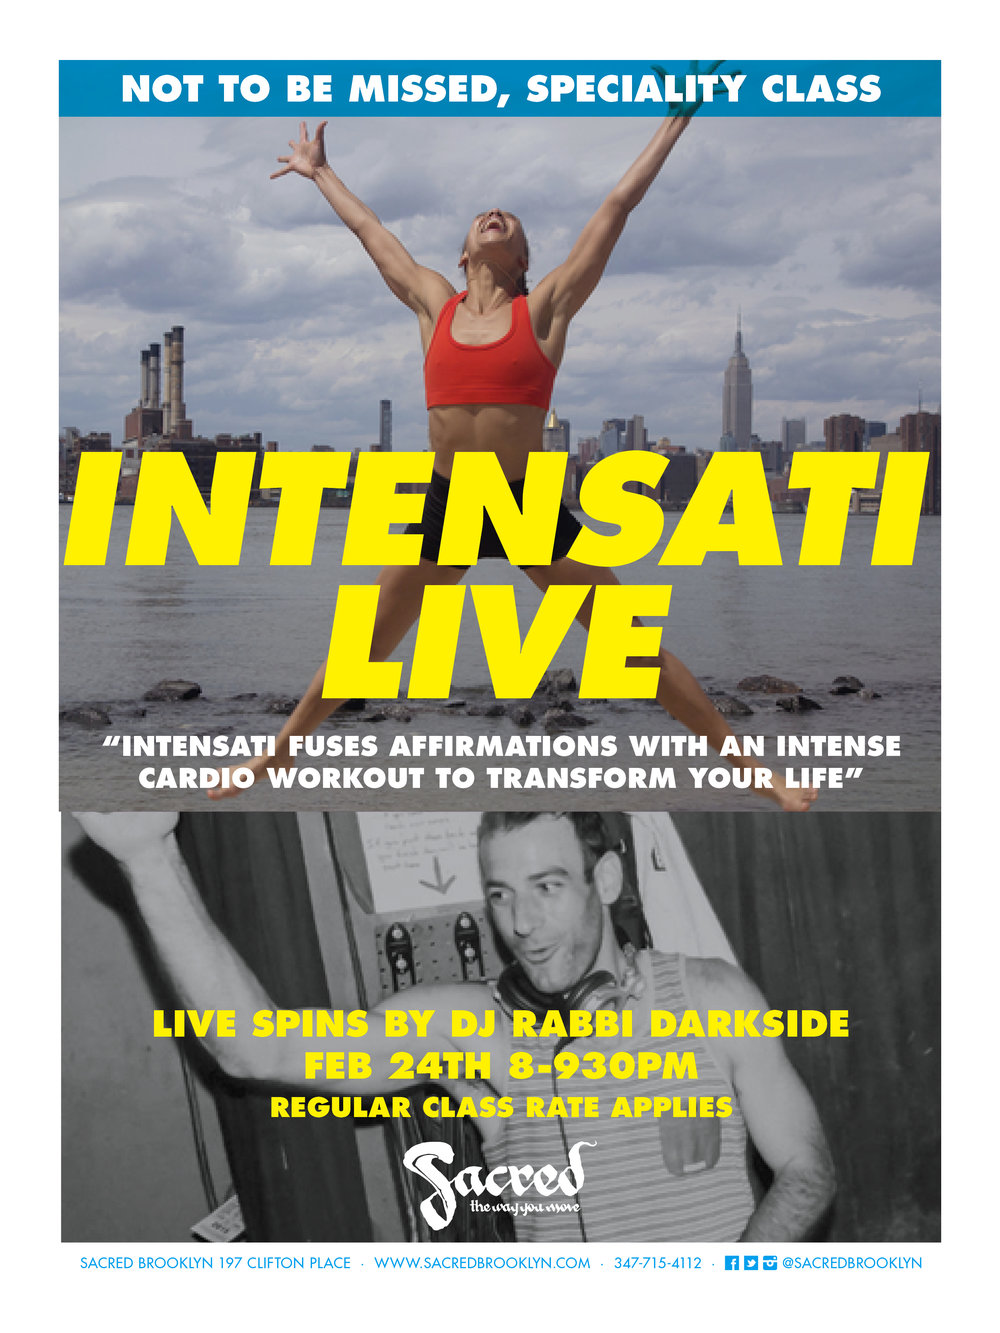 IntensatiLive Feb Flyer_hmv1.jpg